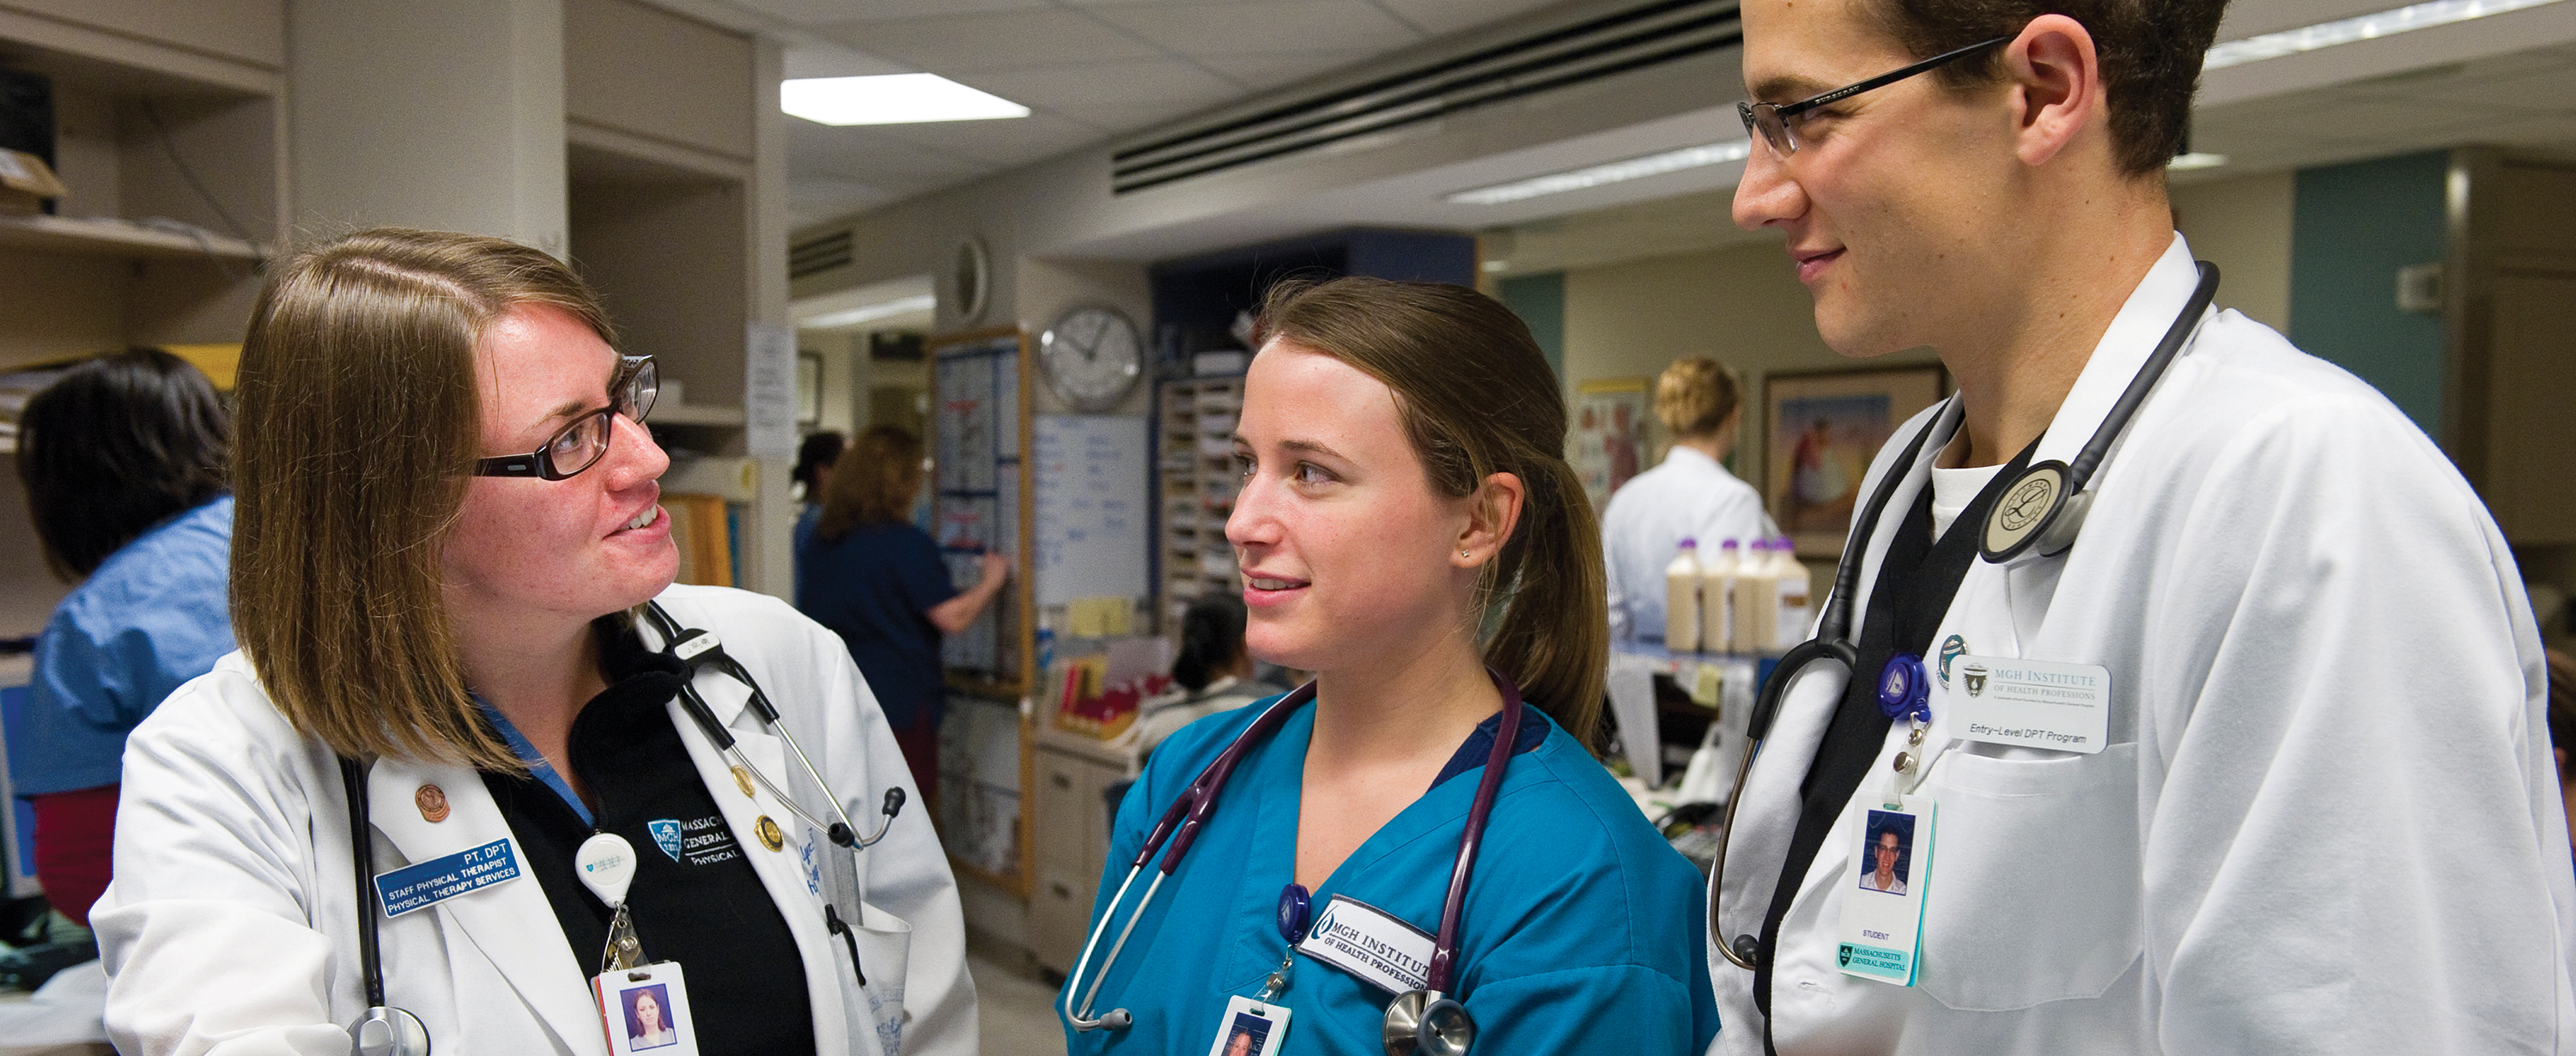 Clinical Experience | MGH Institute of Health Professions